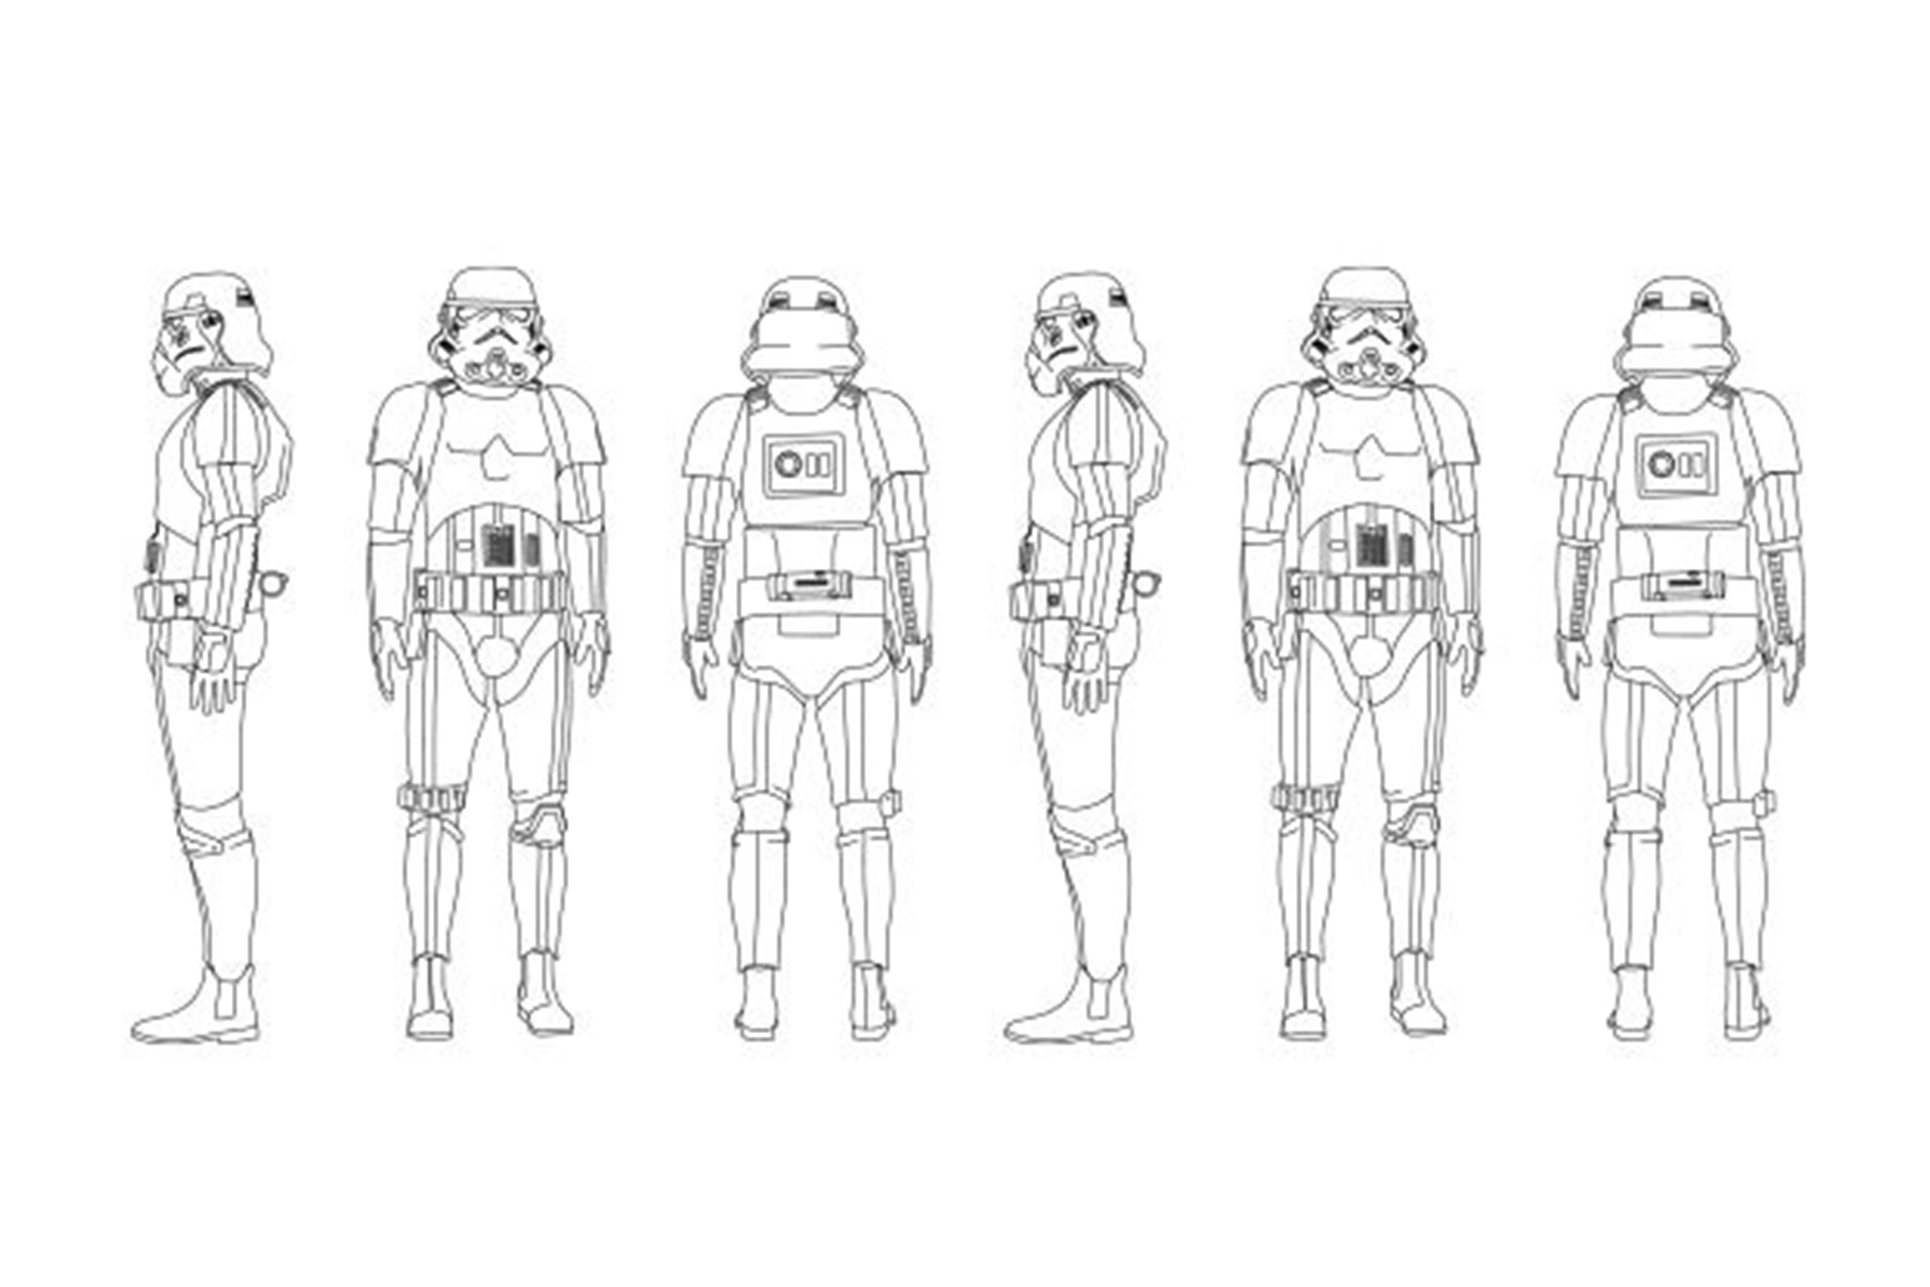 0 Cover Blog La Cartablerie Maroquinerie Scolaire Marque Sds Stormtroopers